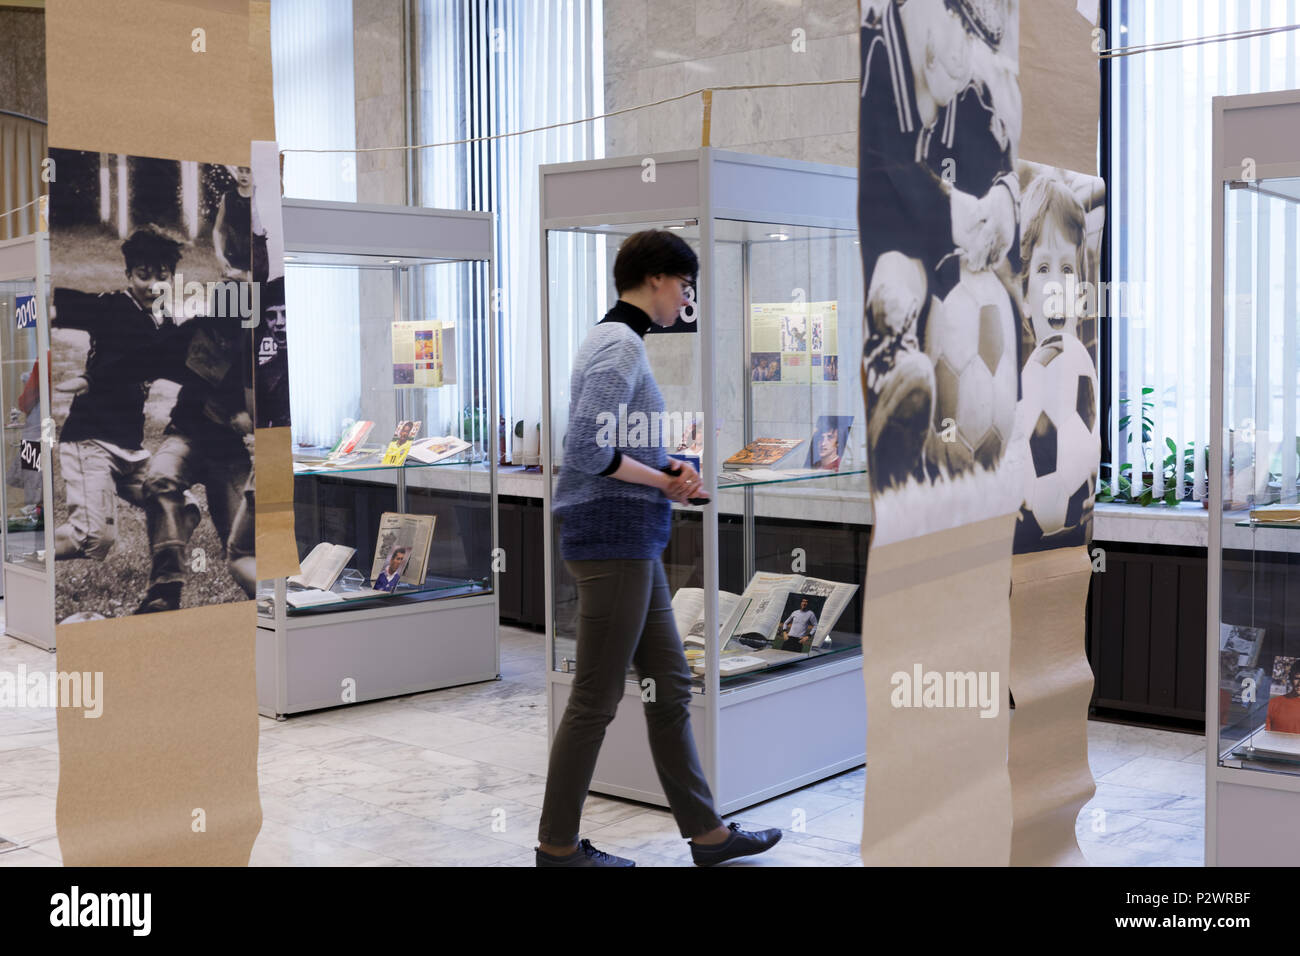 St. Petersburg, Russia - June 7, 2018: Visitor of the exhibition 'Goal!!! FIFA World Cups history' in the National Library of Russia. The exhibition i - Stock Image